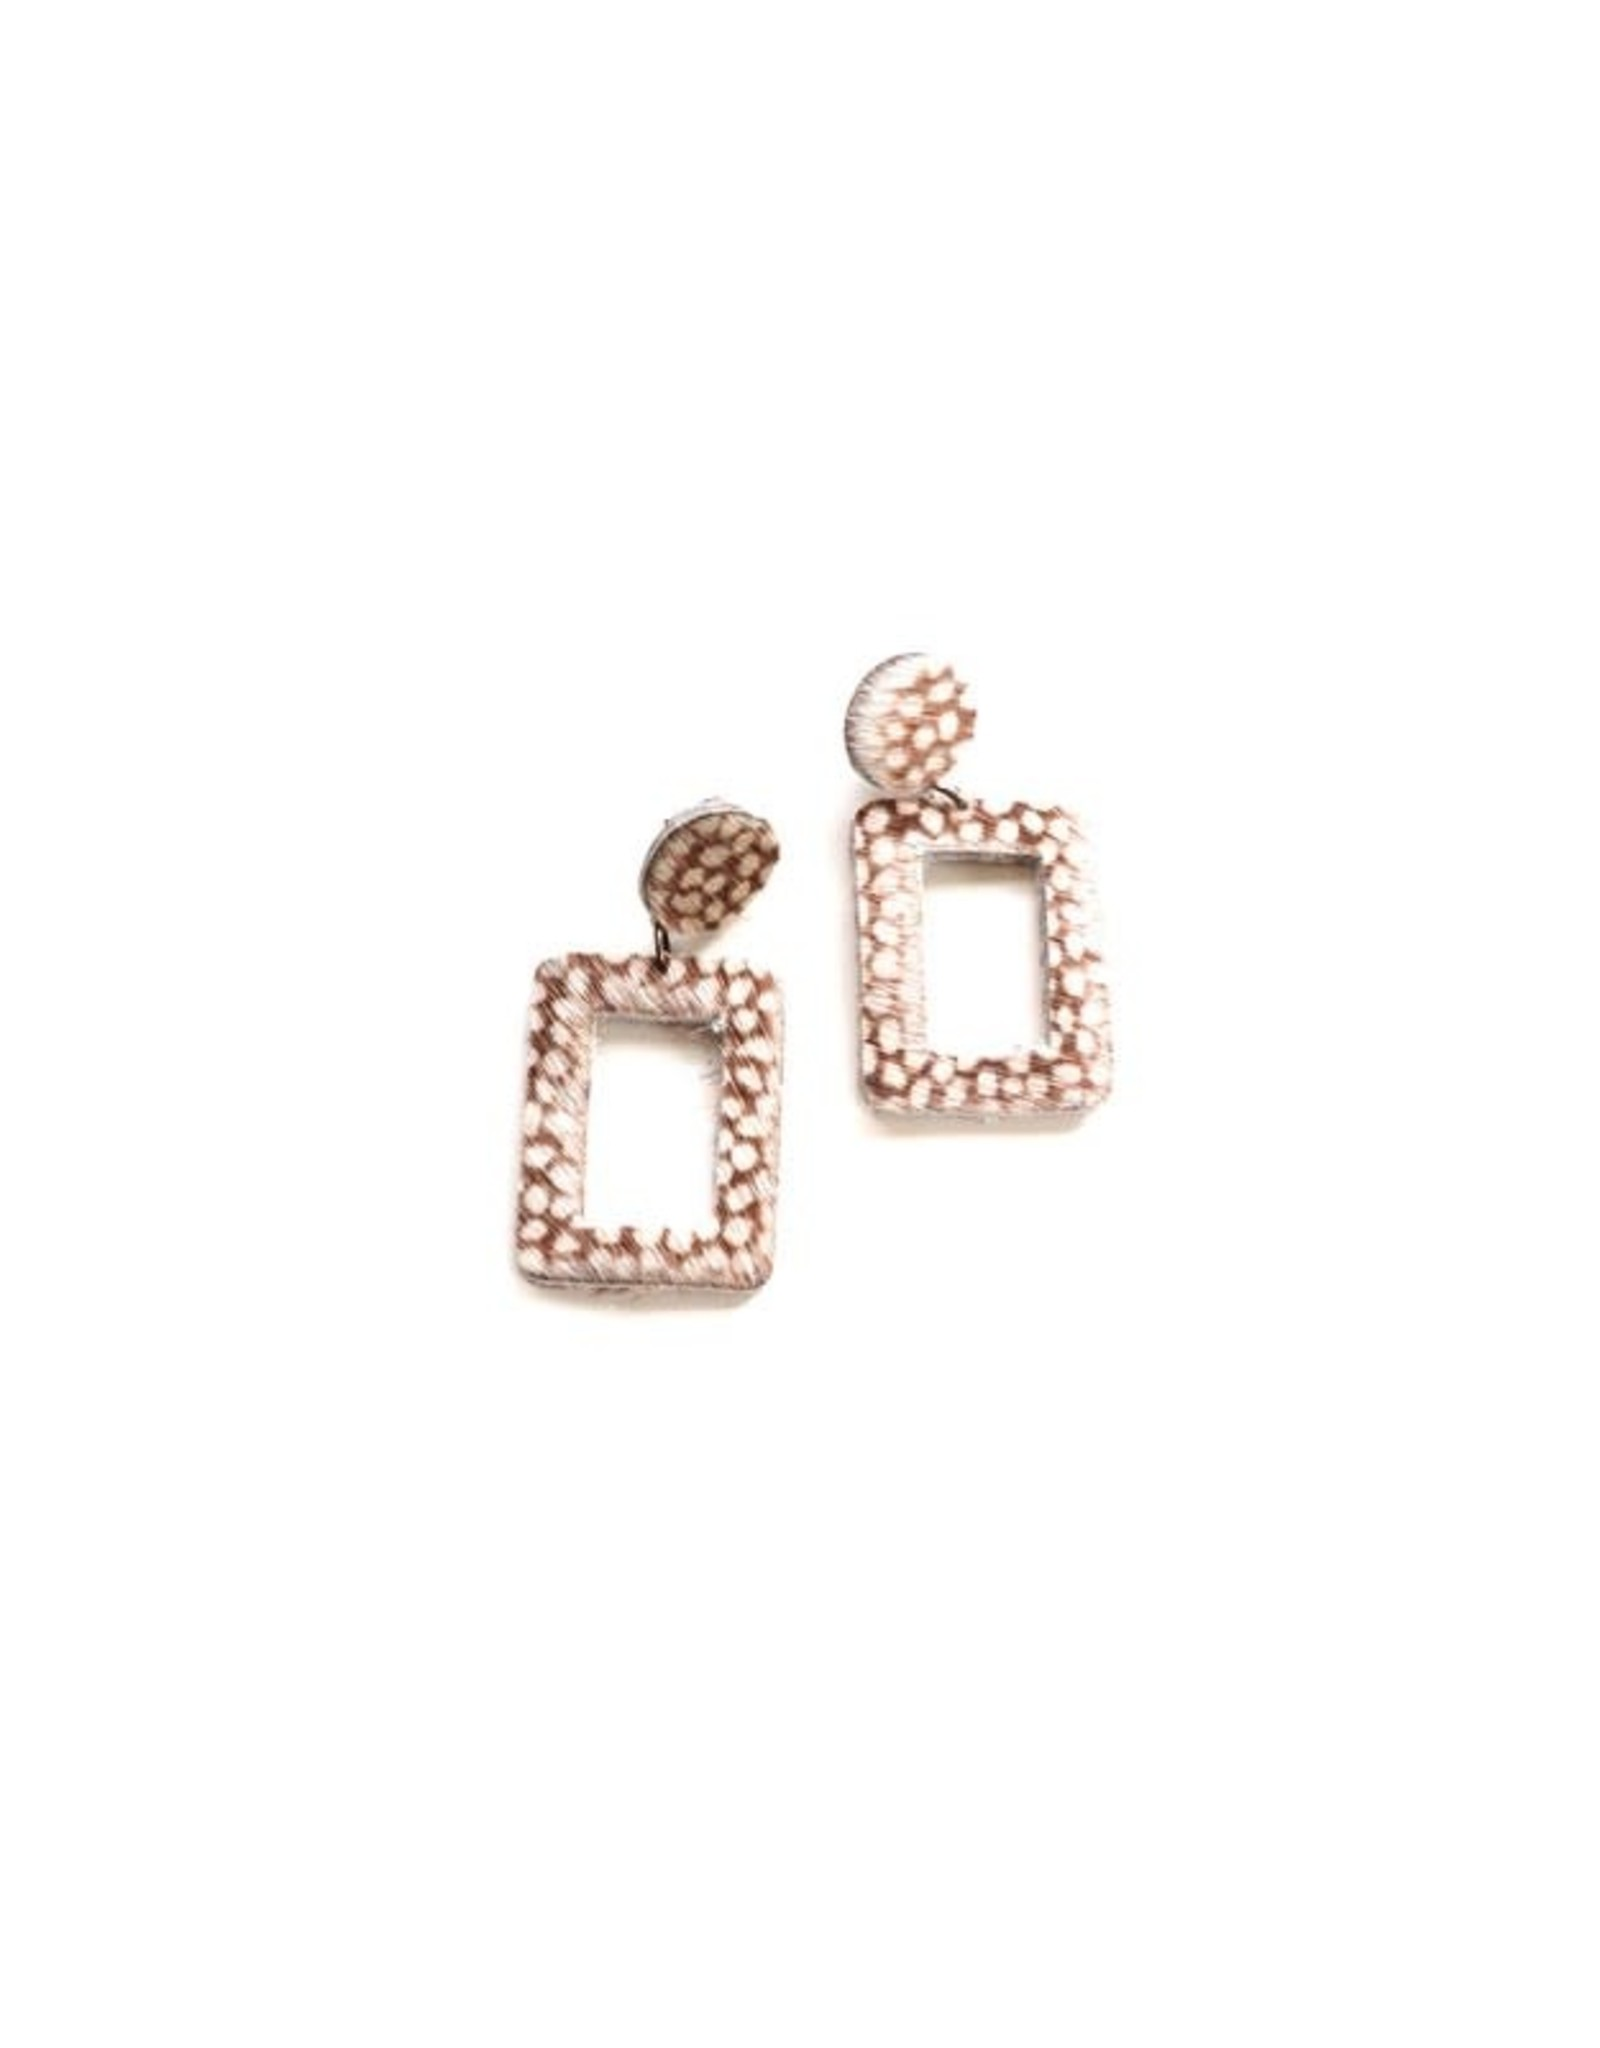 FAWN PRINTED SQUARE DROP EARRING E-190